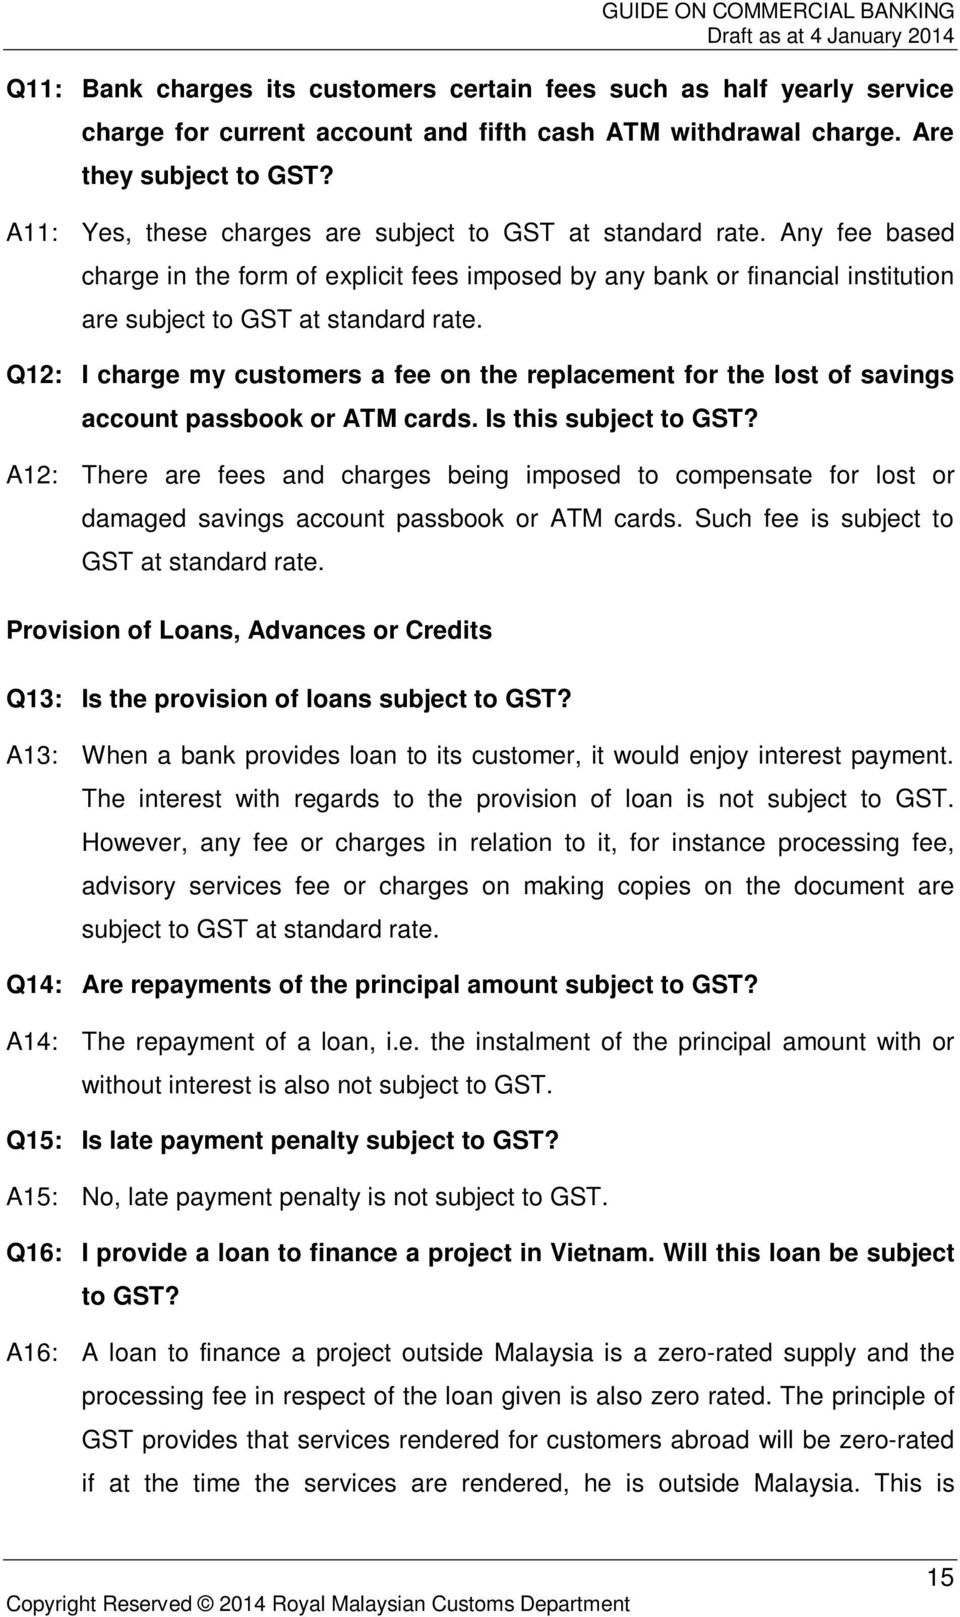 Q12: I charge my customers a fee on the replacement for the lost of savings account passbook or ATM cards. Is this subject to GST?